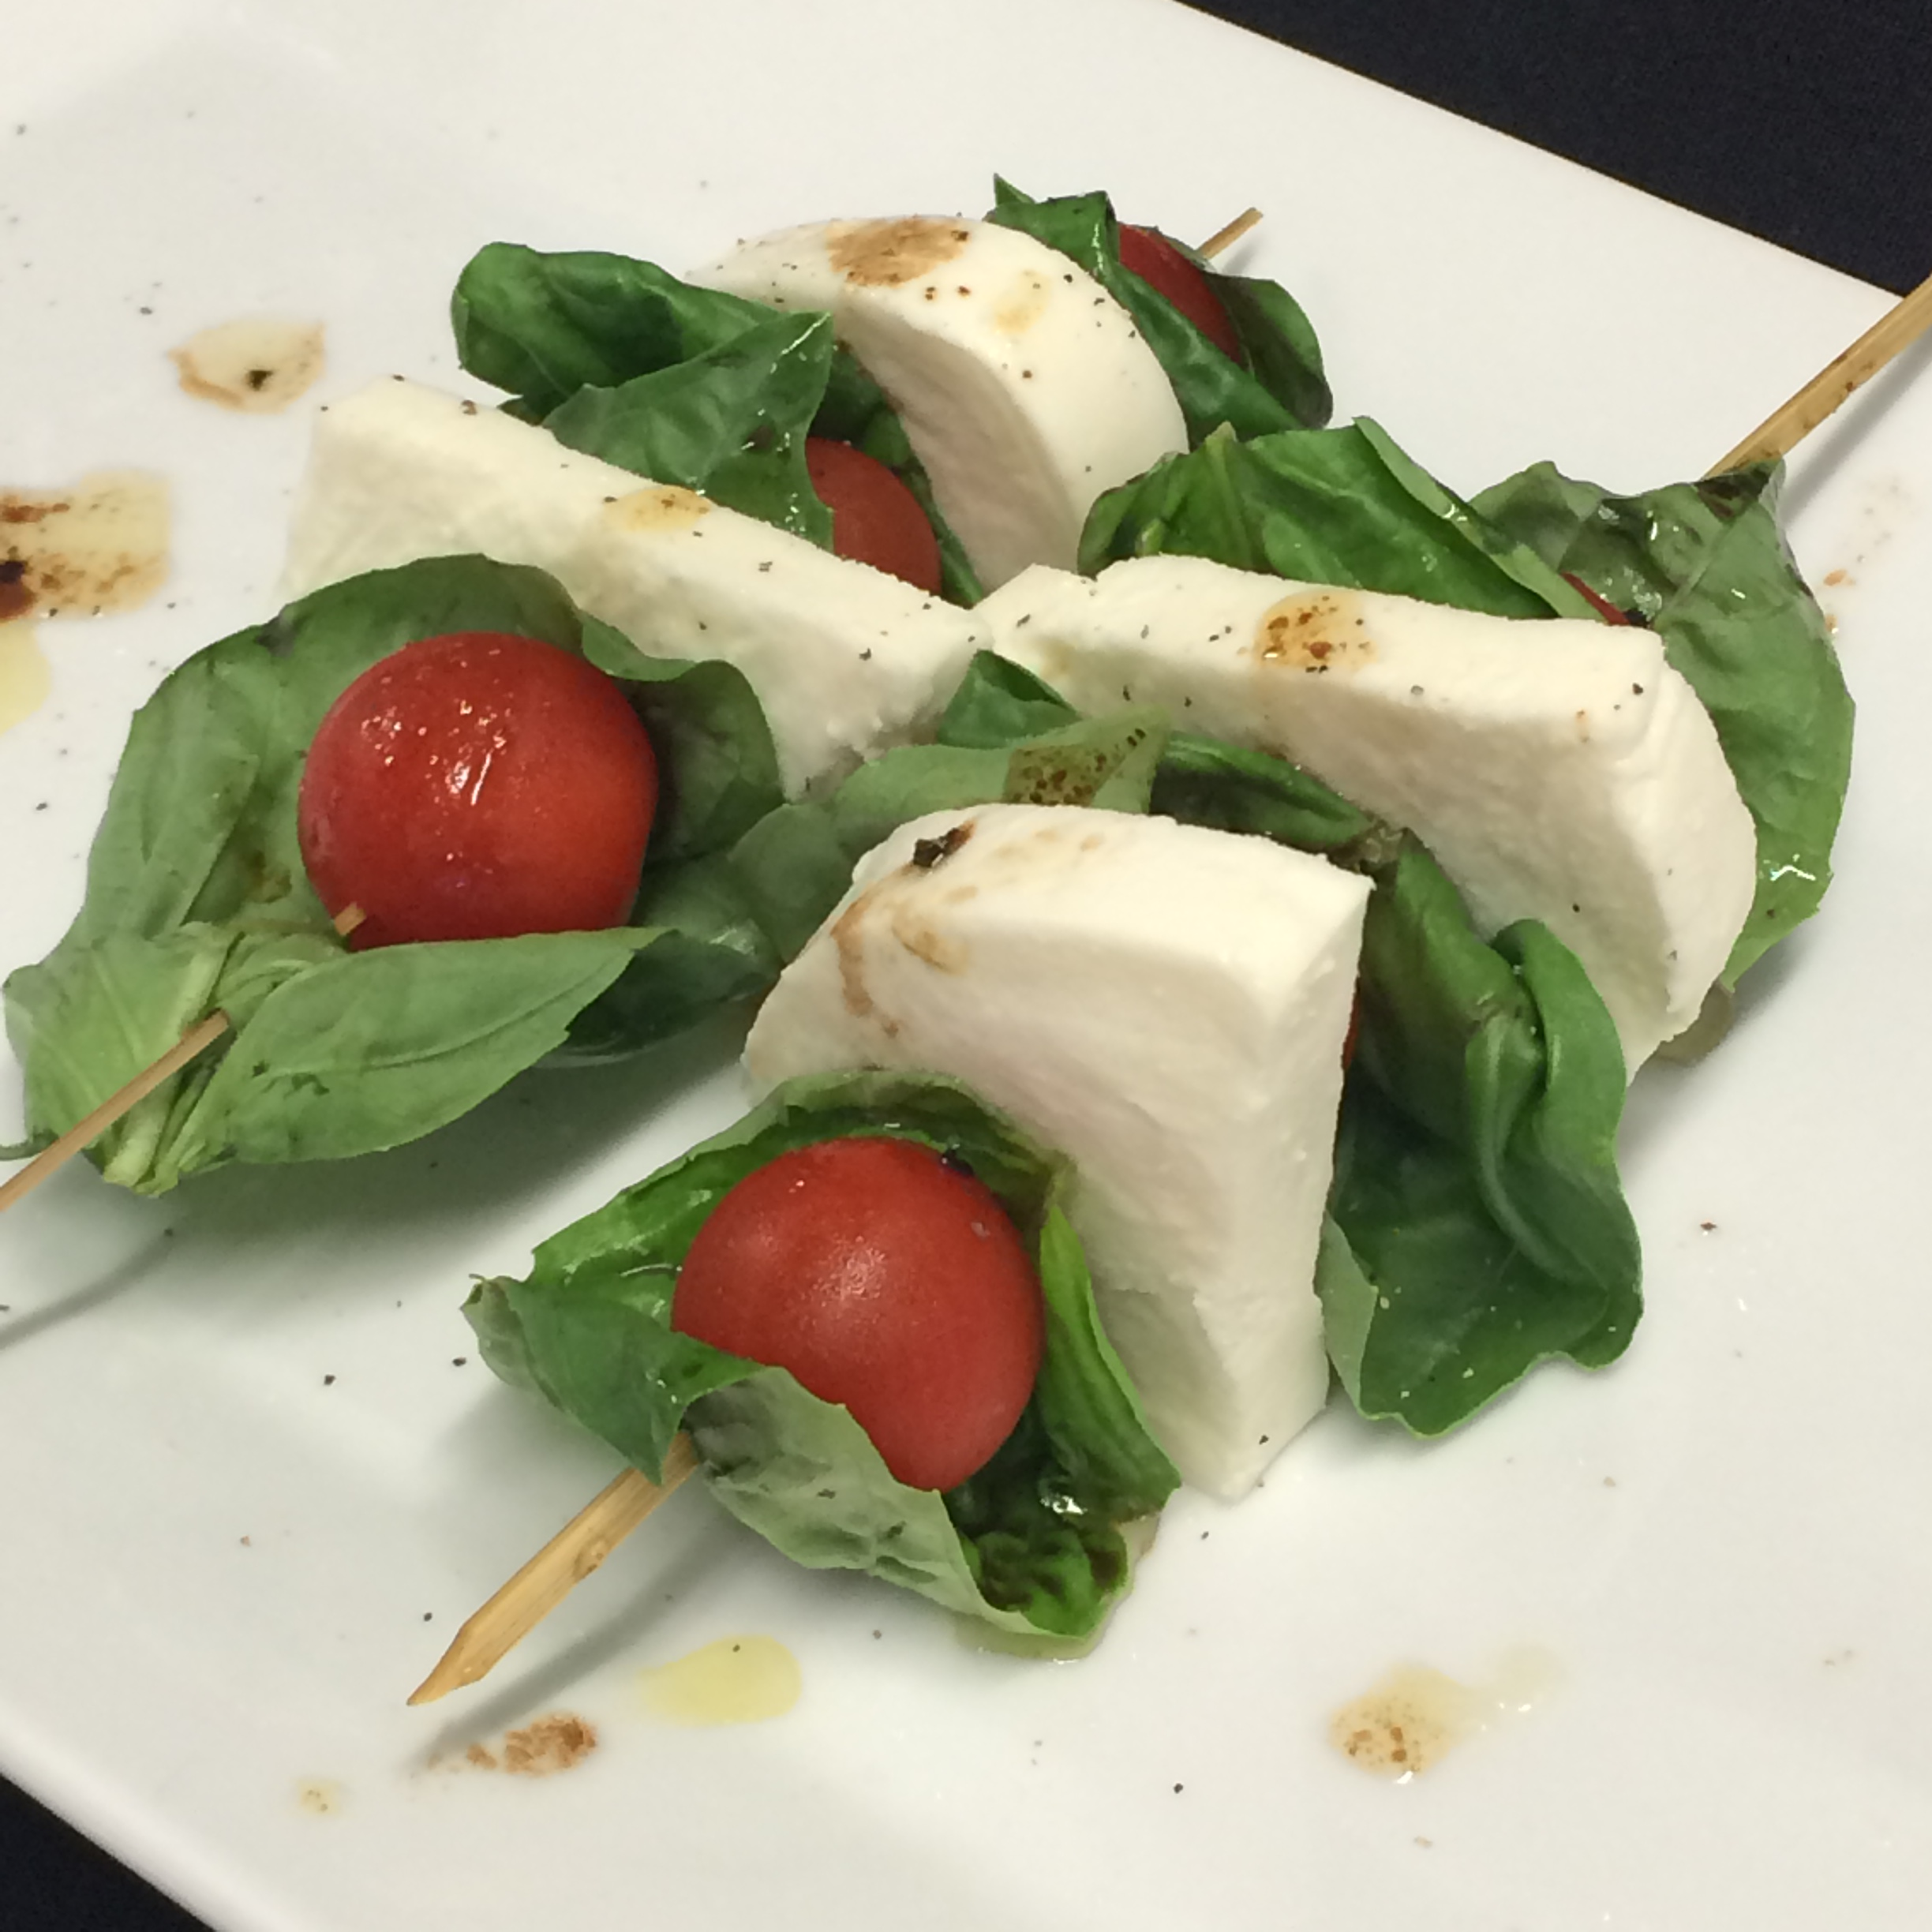 Caprese Salad Skewers with fresh, thickly-cut mozzarella and drizzled in balsamic vinegar and olive oil.